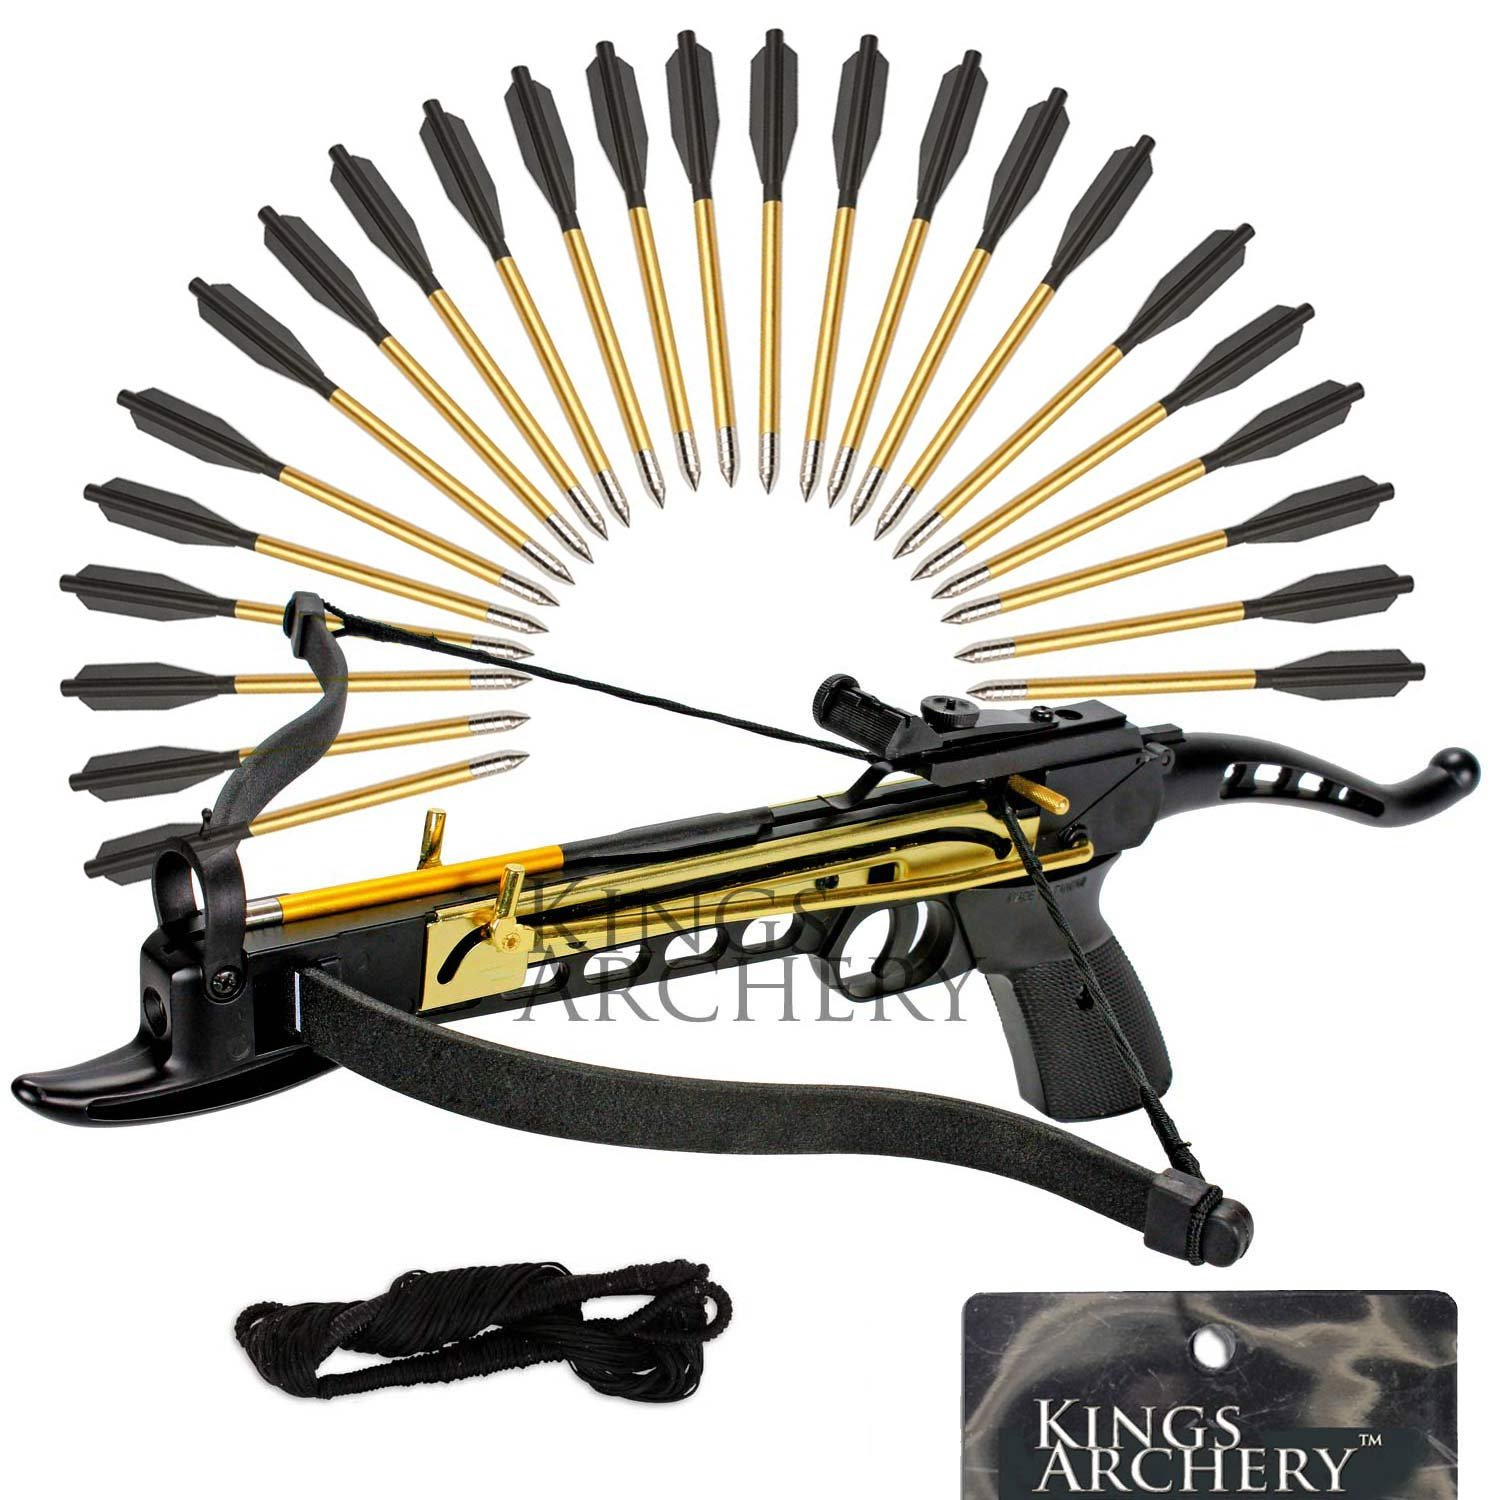 KingsArchery Self-Cocking Crossbow Bundle with Adjustable Sights, Spare Crossbow String and Caps, 27 Aluminim Arrow Bolt Set